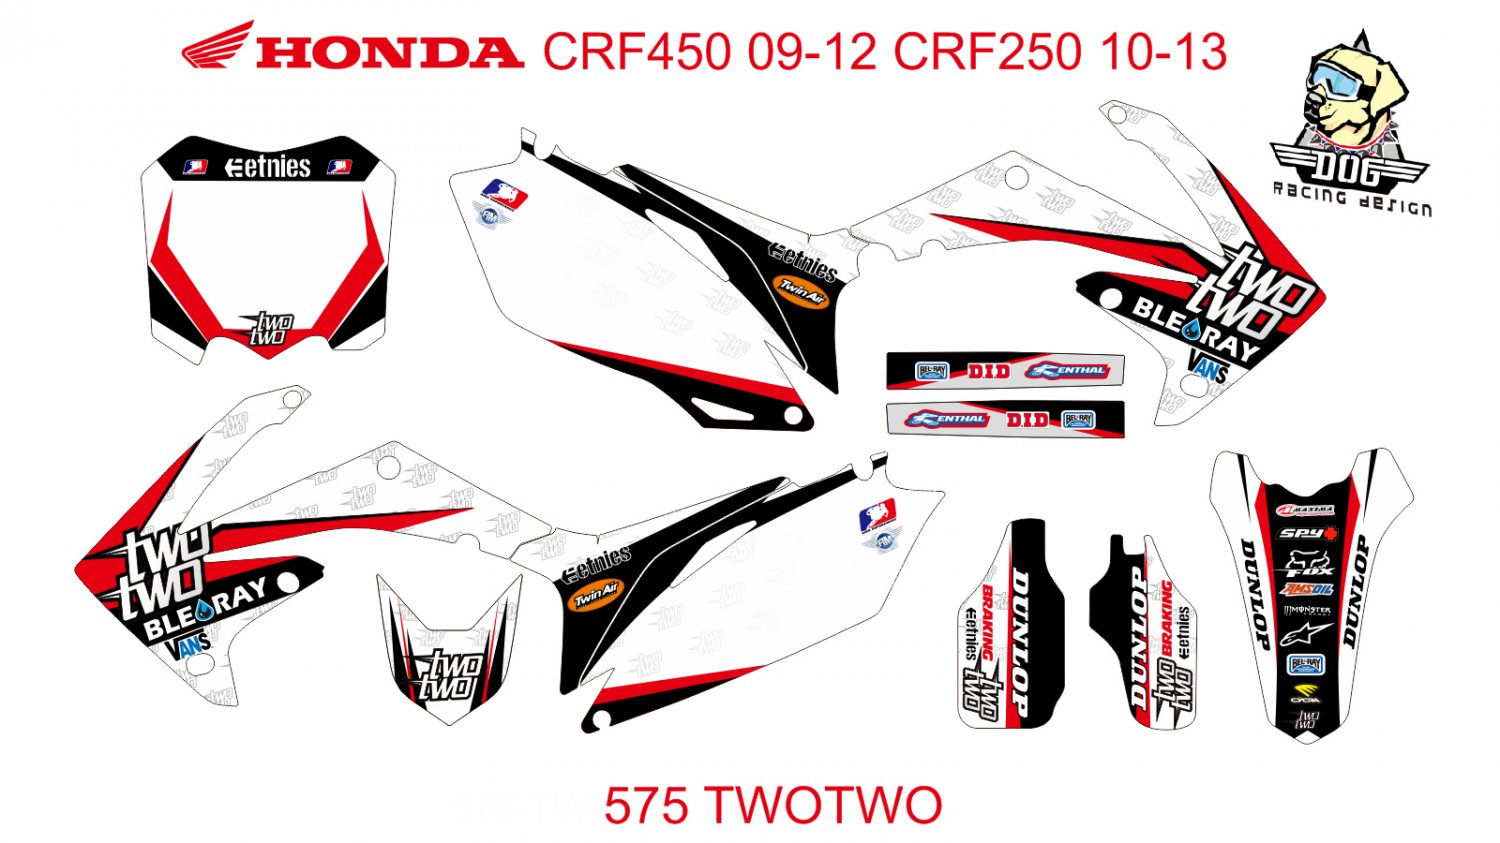 HONDA CRF 250 2010-2013 CRF 450 2009-2012 GRAPHIC DECAL KIT CODE.575